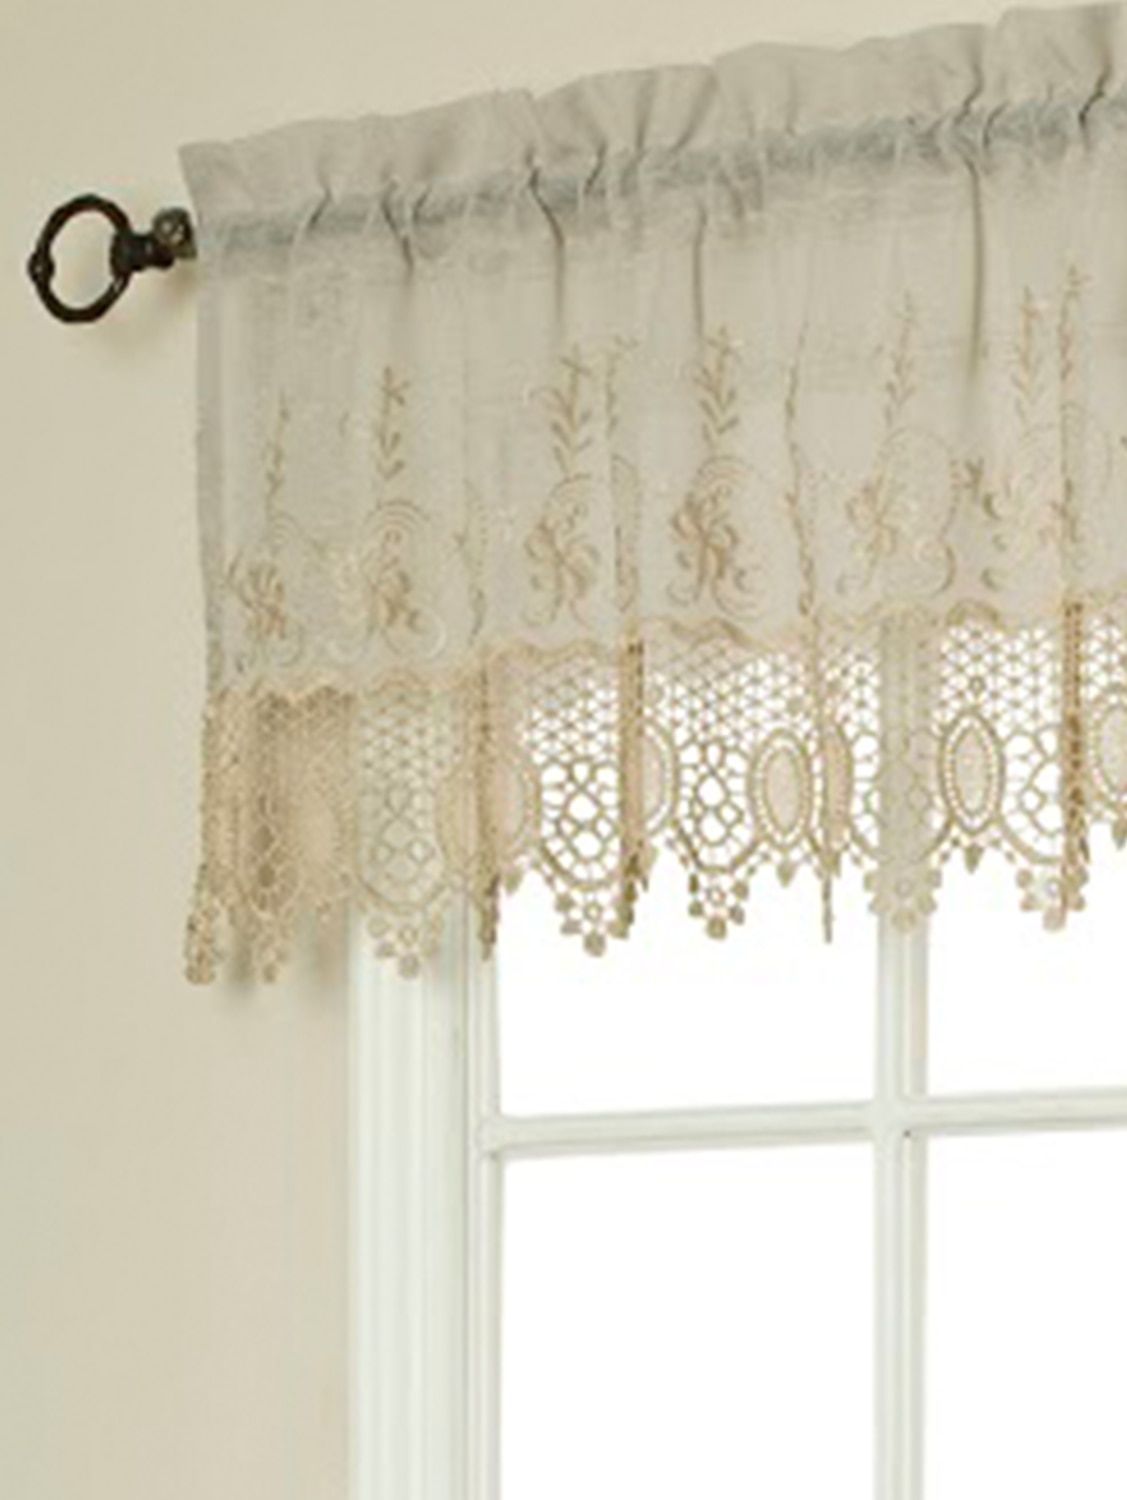 Linen And Lace Rod Pocket Tailored Window Valance Curtains Drapes Curtains Kitchen Curtains #tailored #valances #for #living #room